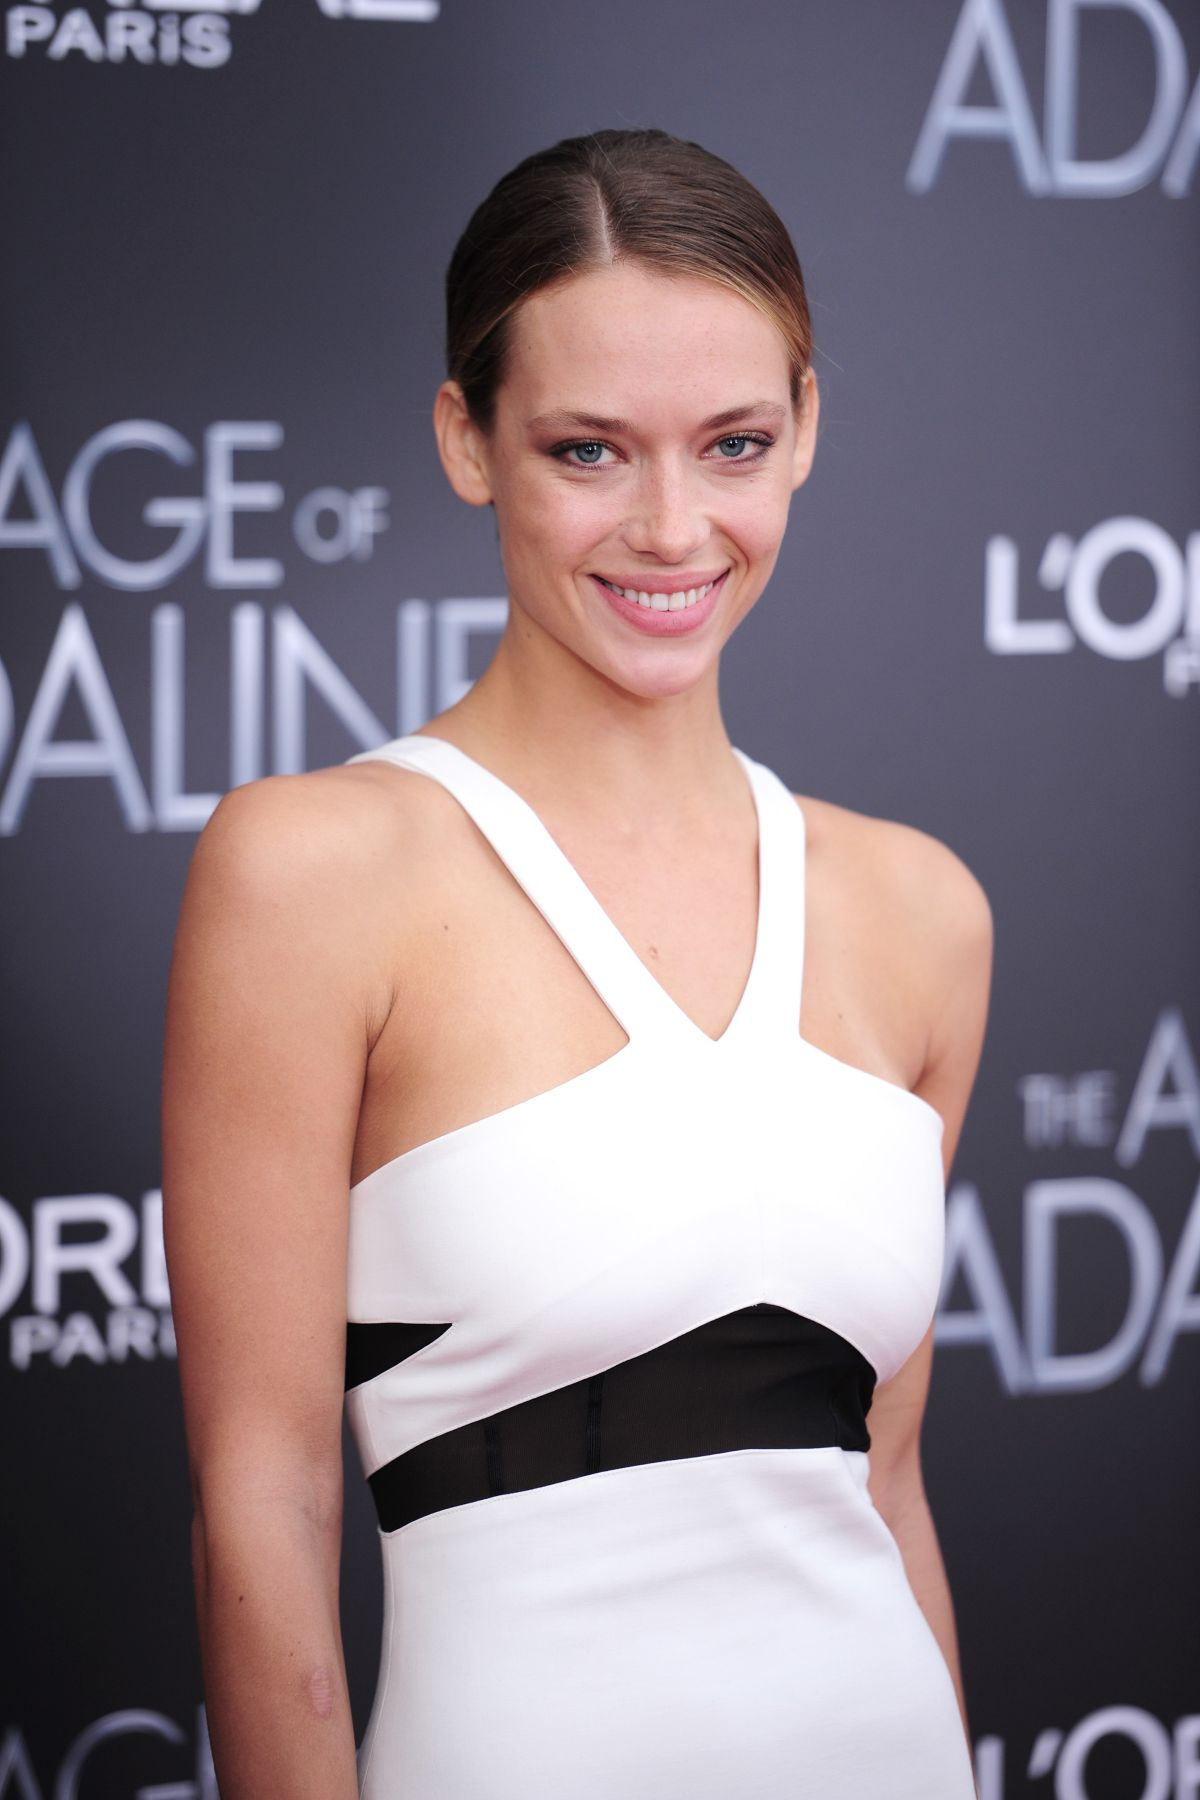 HANNAH FERGUSON at The Age of Adaline Premiere in New York